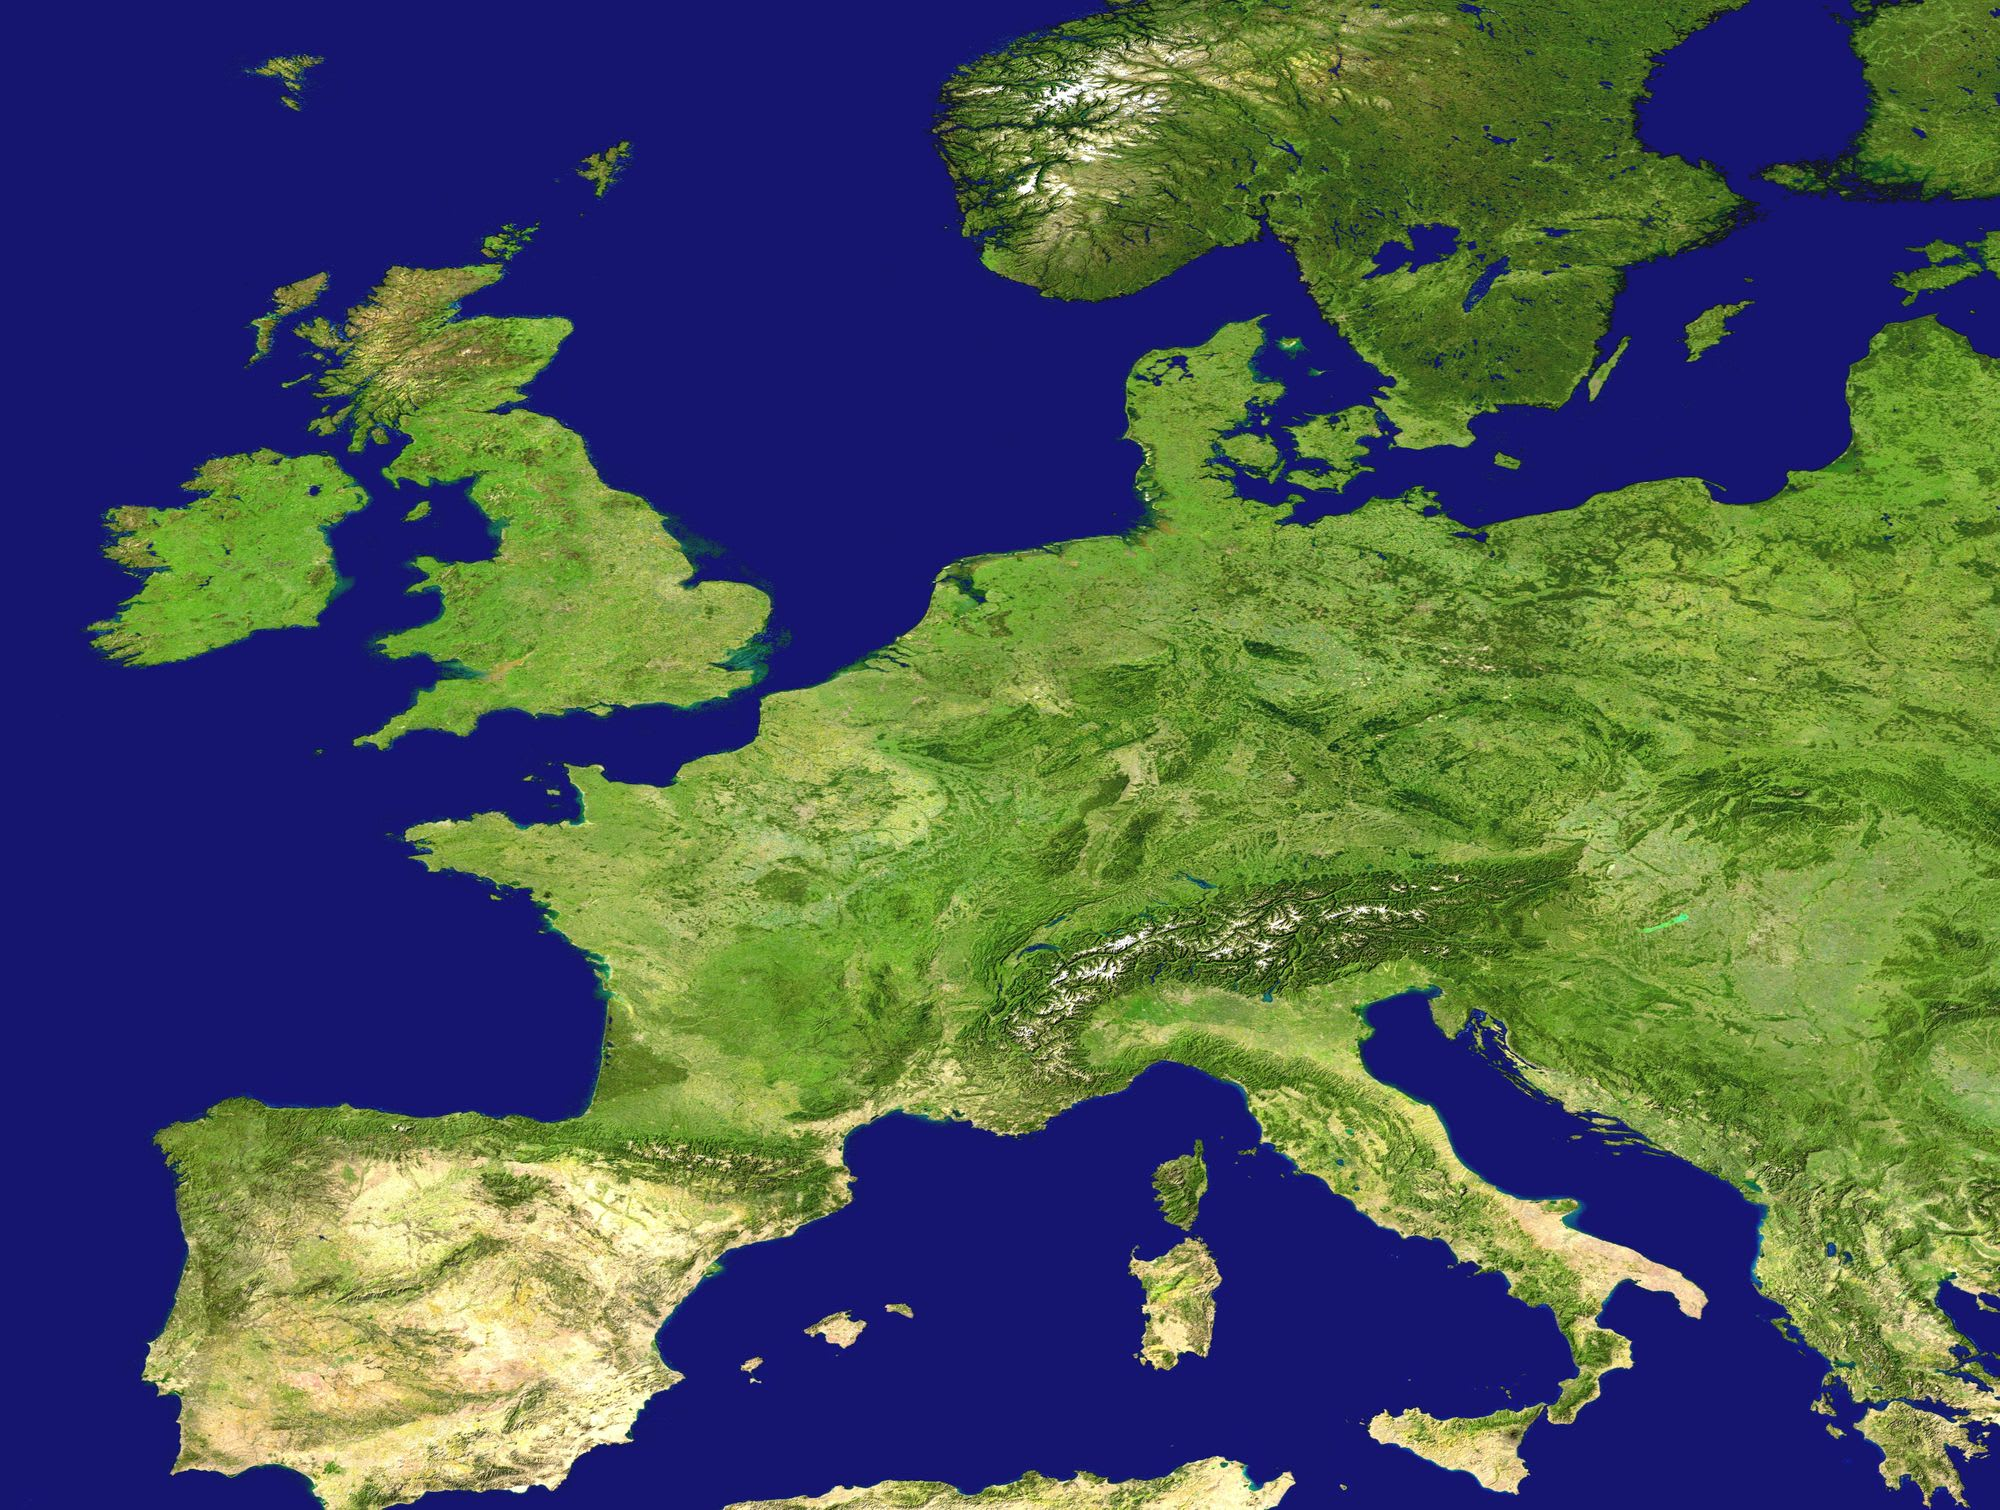 Background Image for European Census Data and Boundaries